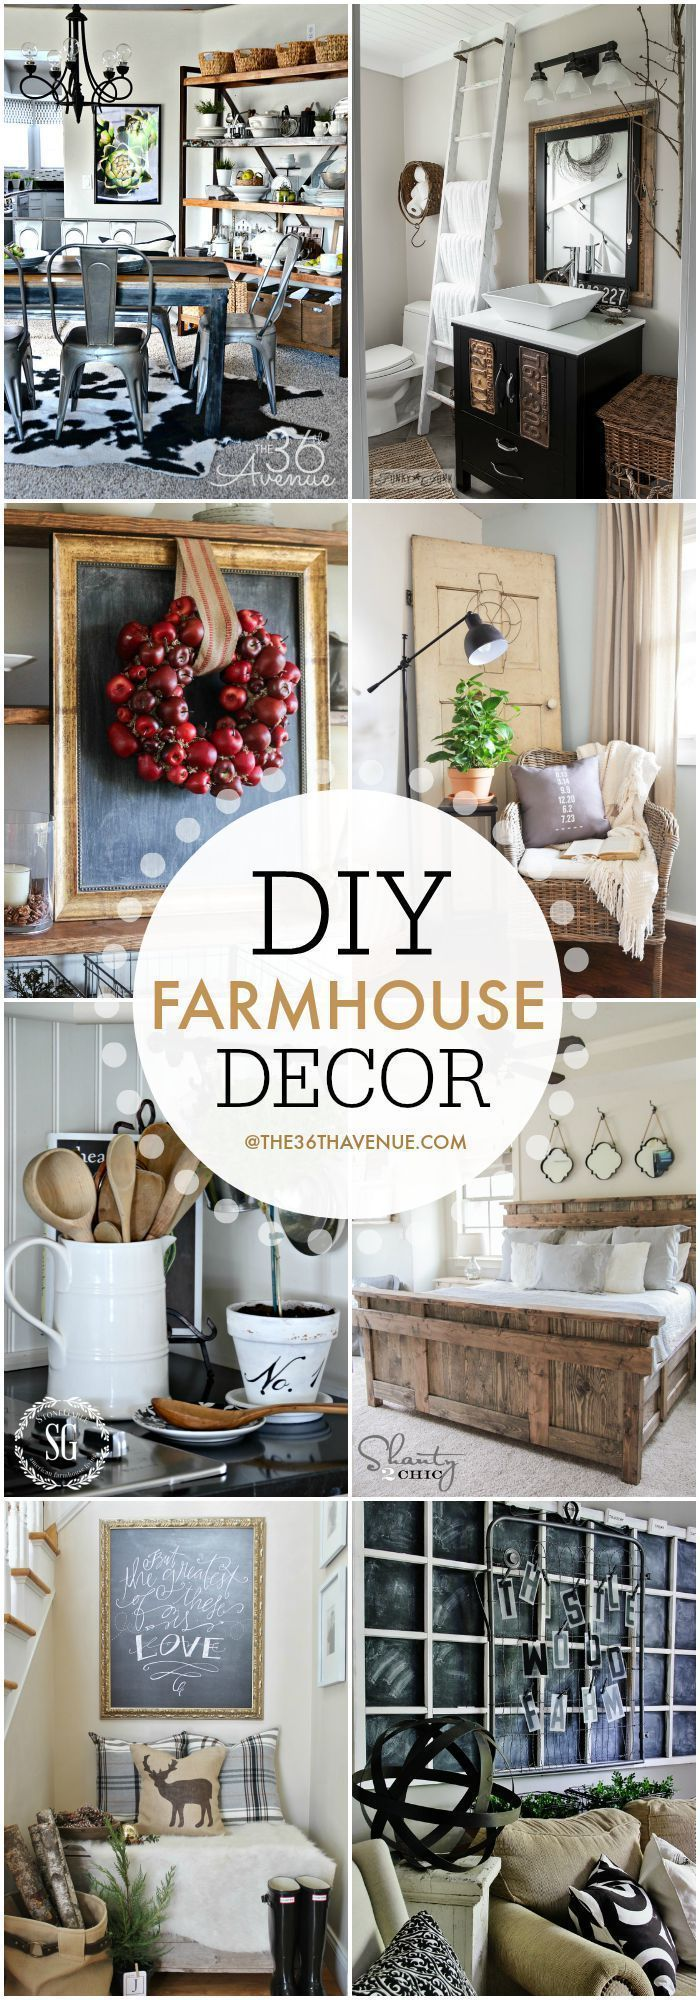 Best 25 Wholesale Farmhouse Decor Ideas On Pinterest Home Decorators Catalog Best Ideas of Home Decor and Design [homedecoratorscatalog.us]